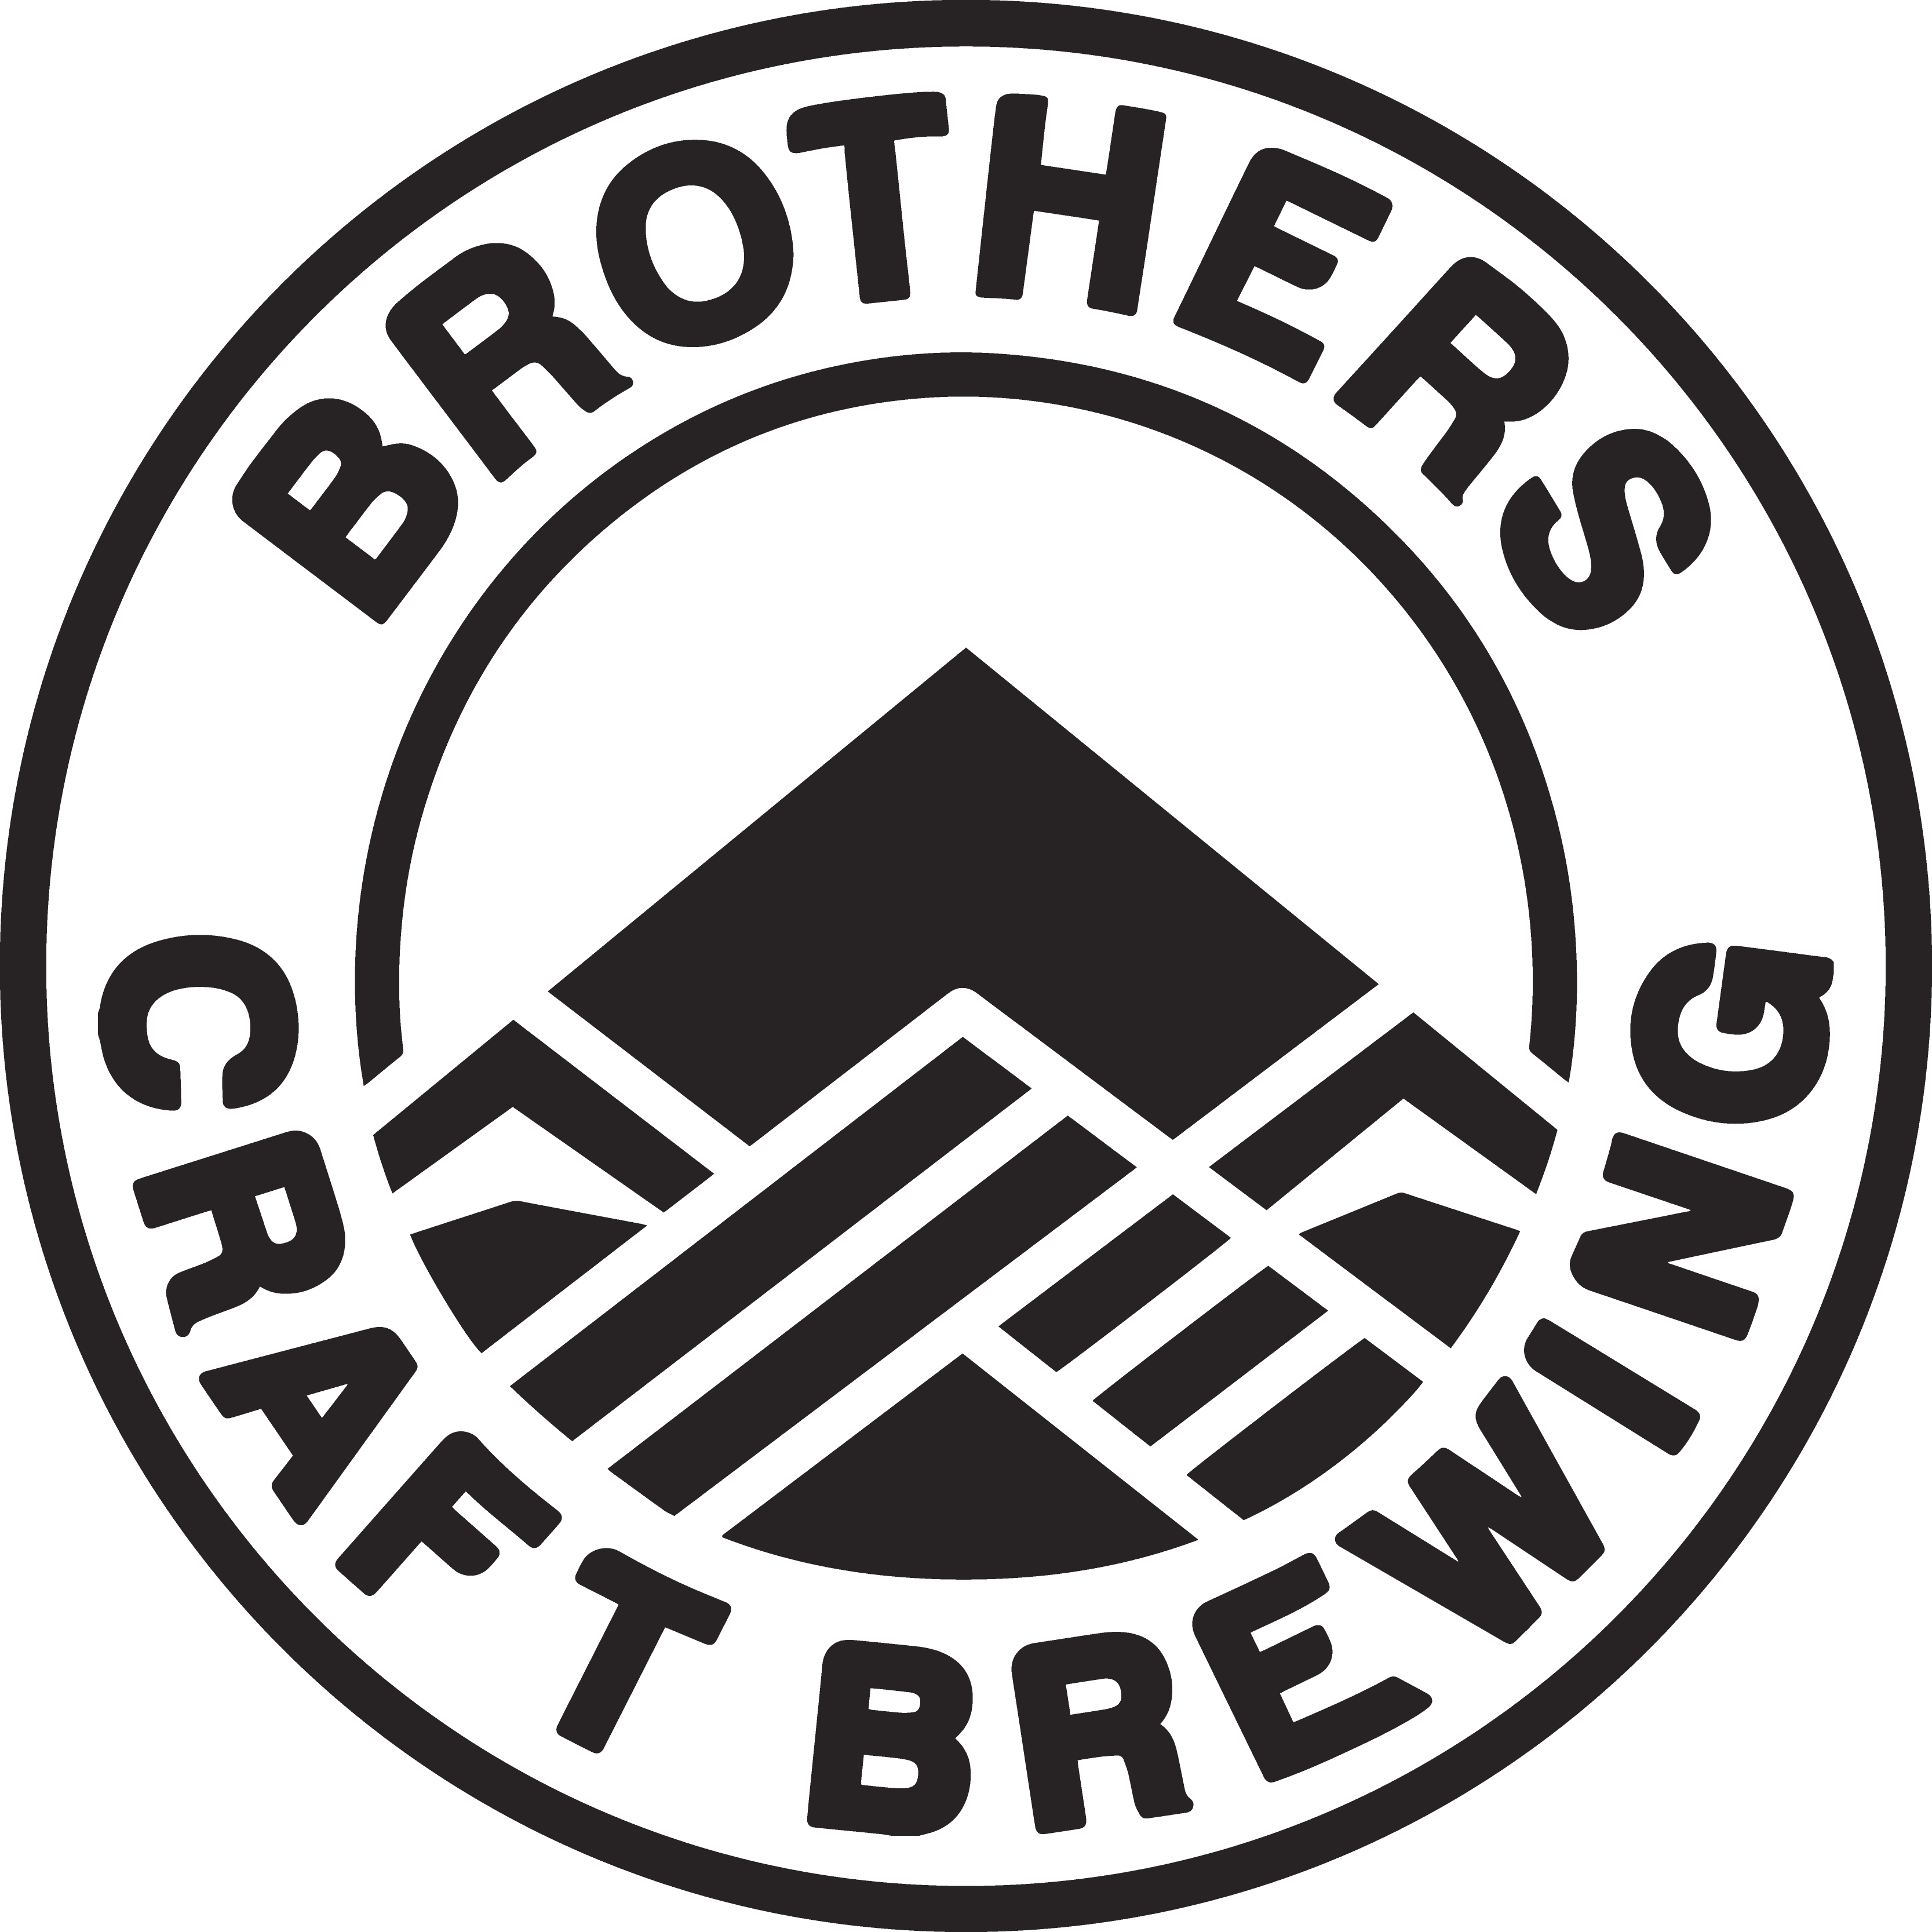 Brother Craft Brewing